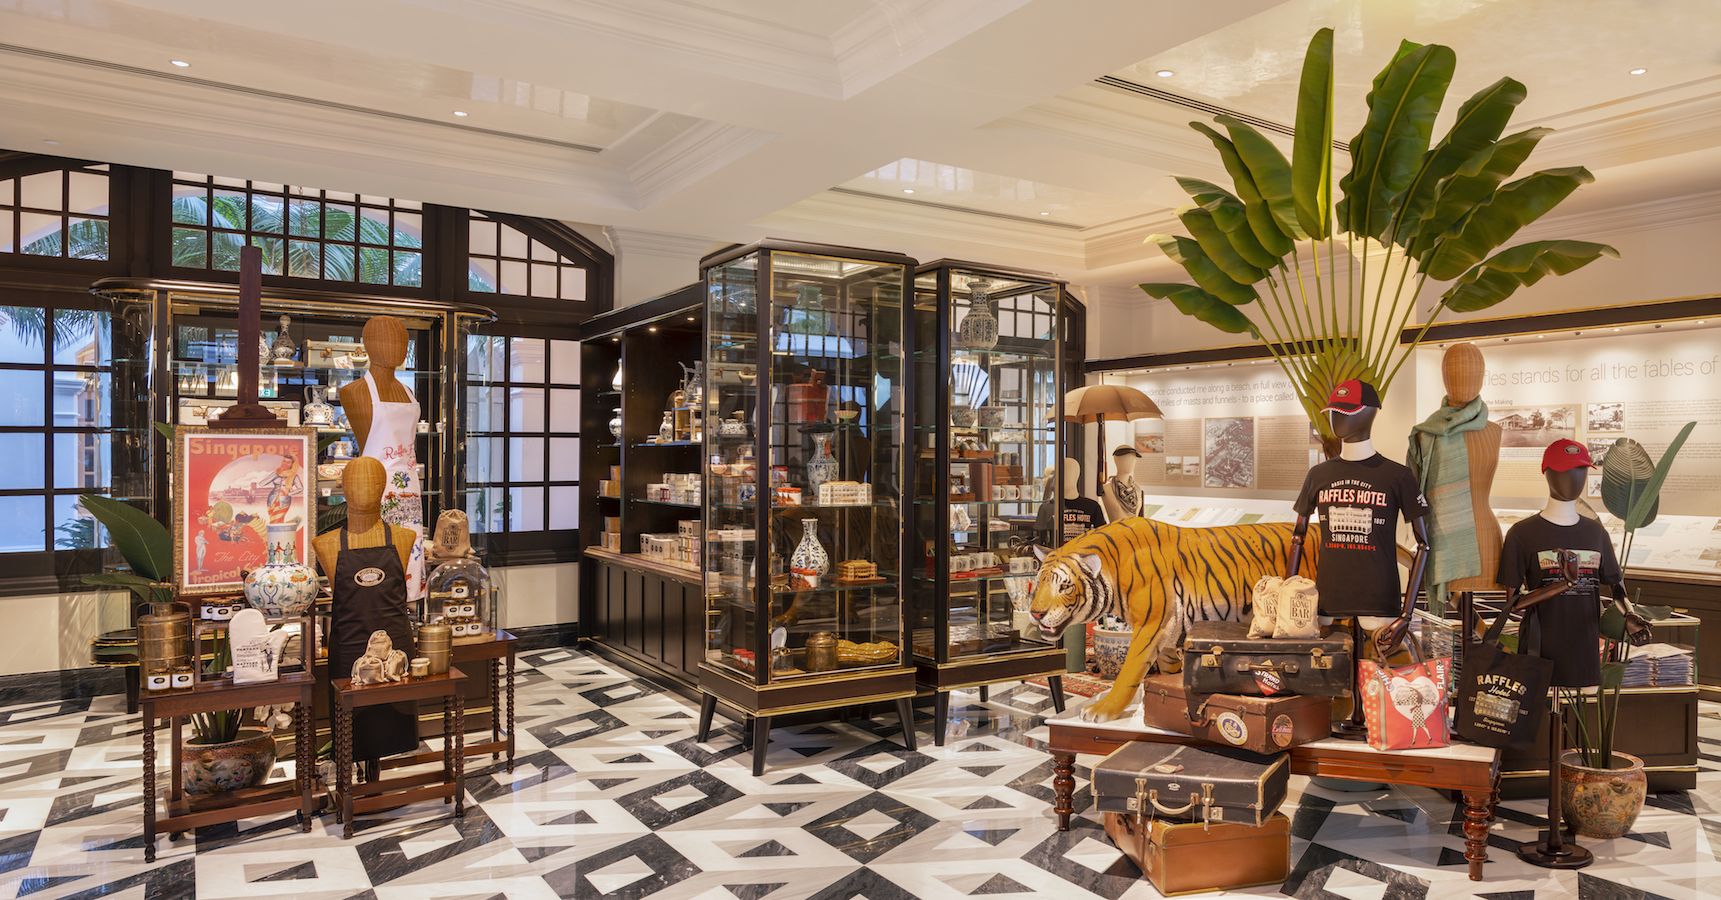 Raffles Hotel in Singapore reopens after huge makeover